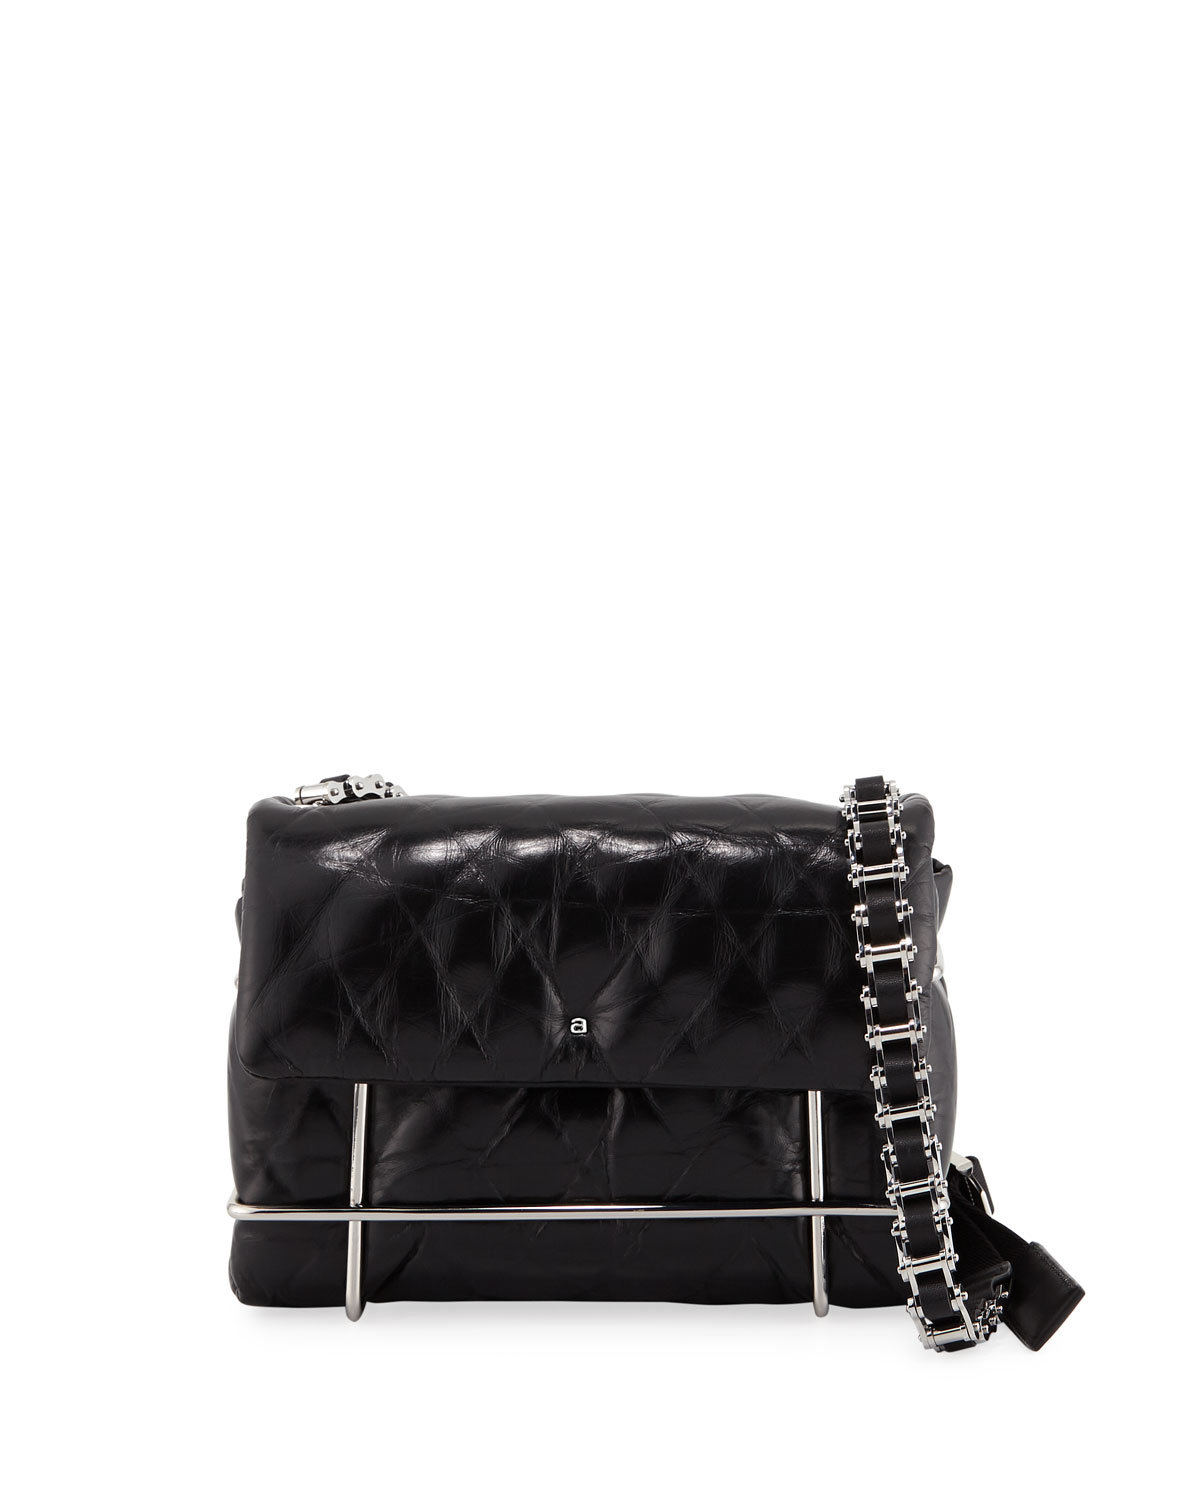 Exact Product: Halo Quilted Shoulder Bag, Brand: Alexander Wang, Available on: neimanmarcus.com, Price: $995